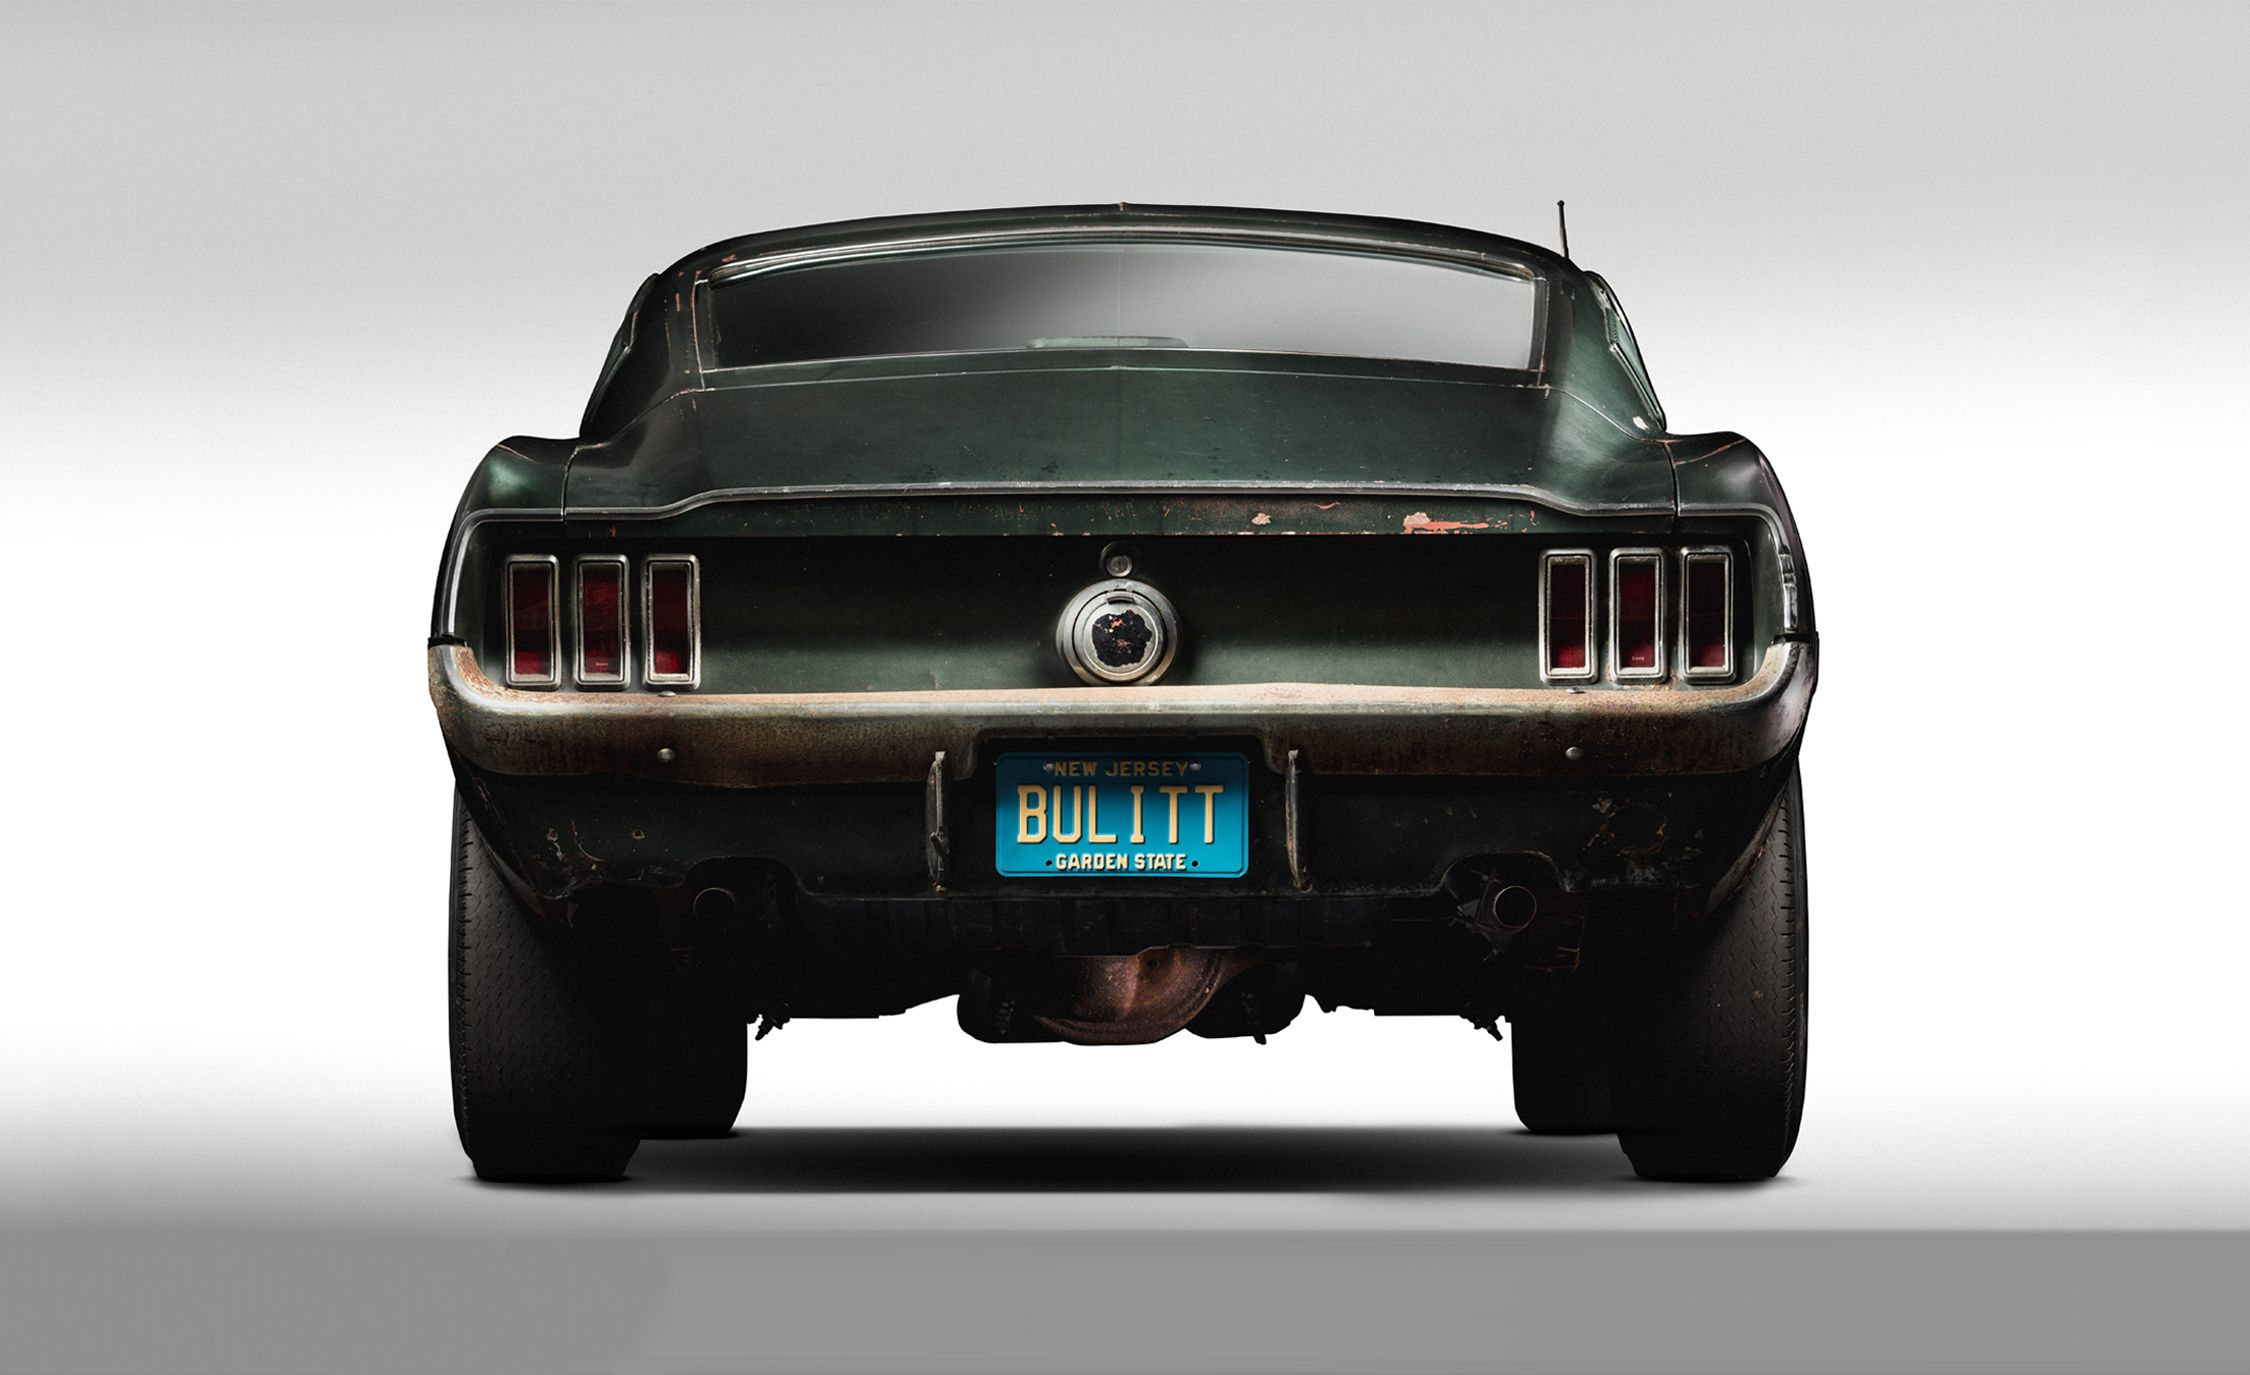 2018 Mustang Build And Price >> How the Original Bullitt-Movie Mustang Was Rediscovered | Feature | Car and Driver